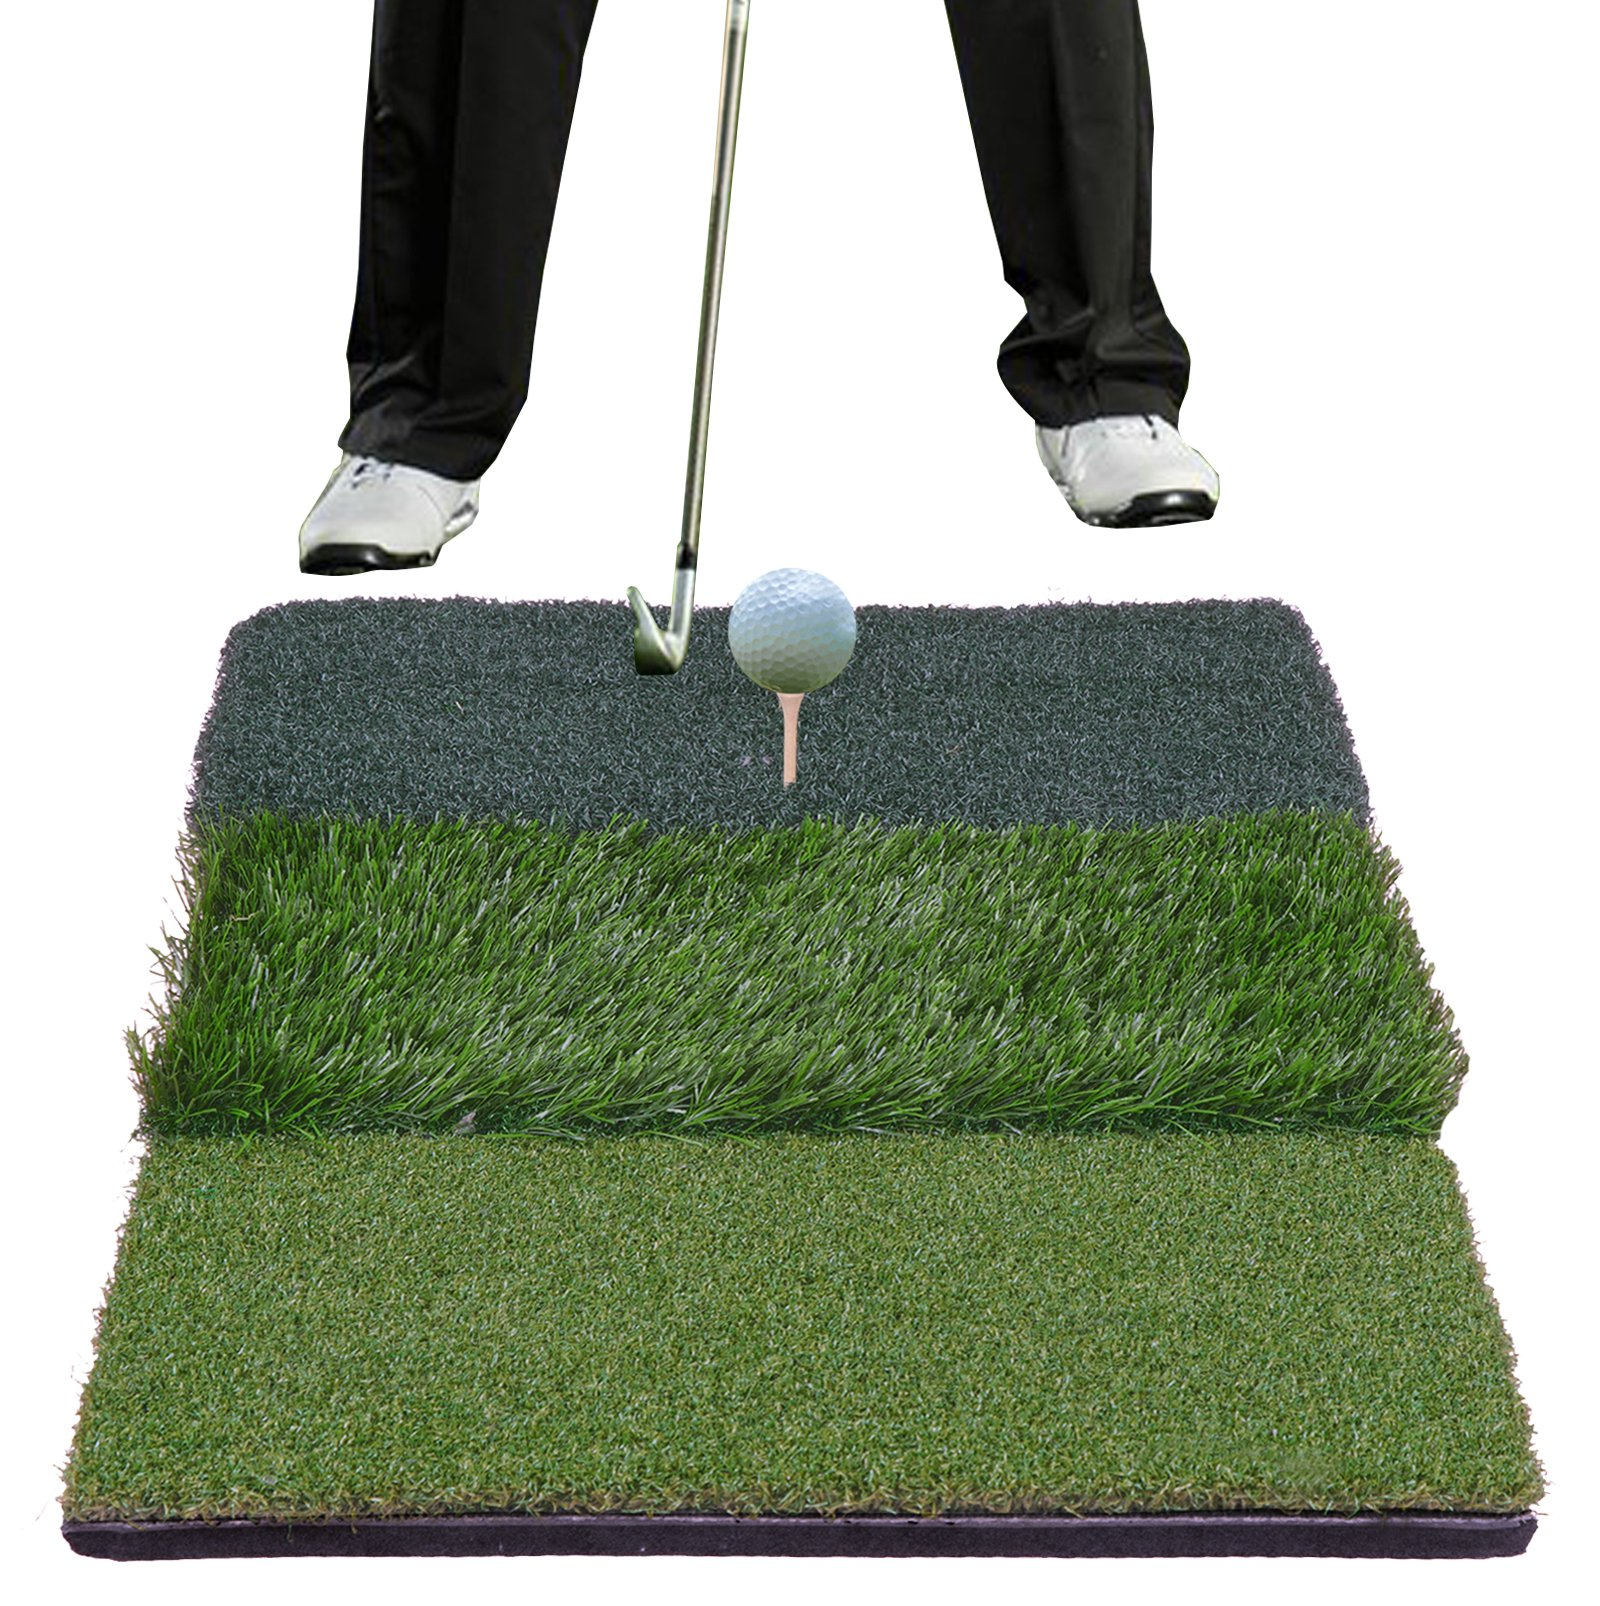 Smartxchoices 16''x 25'' Golf Practice Mat Portable Tri-Turf Golf Mat for Driving, Hitting, Chipping, Training with 6 Free Tees, Realistic Fairway & Rough Grass Mat Backyard/Indoor/Outdoor by Smartxchoices